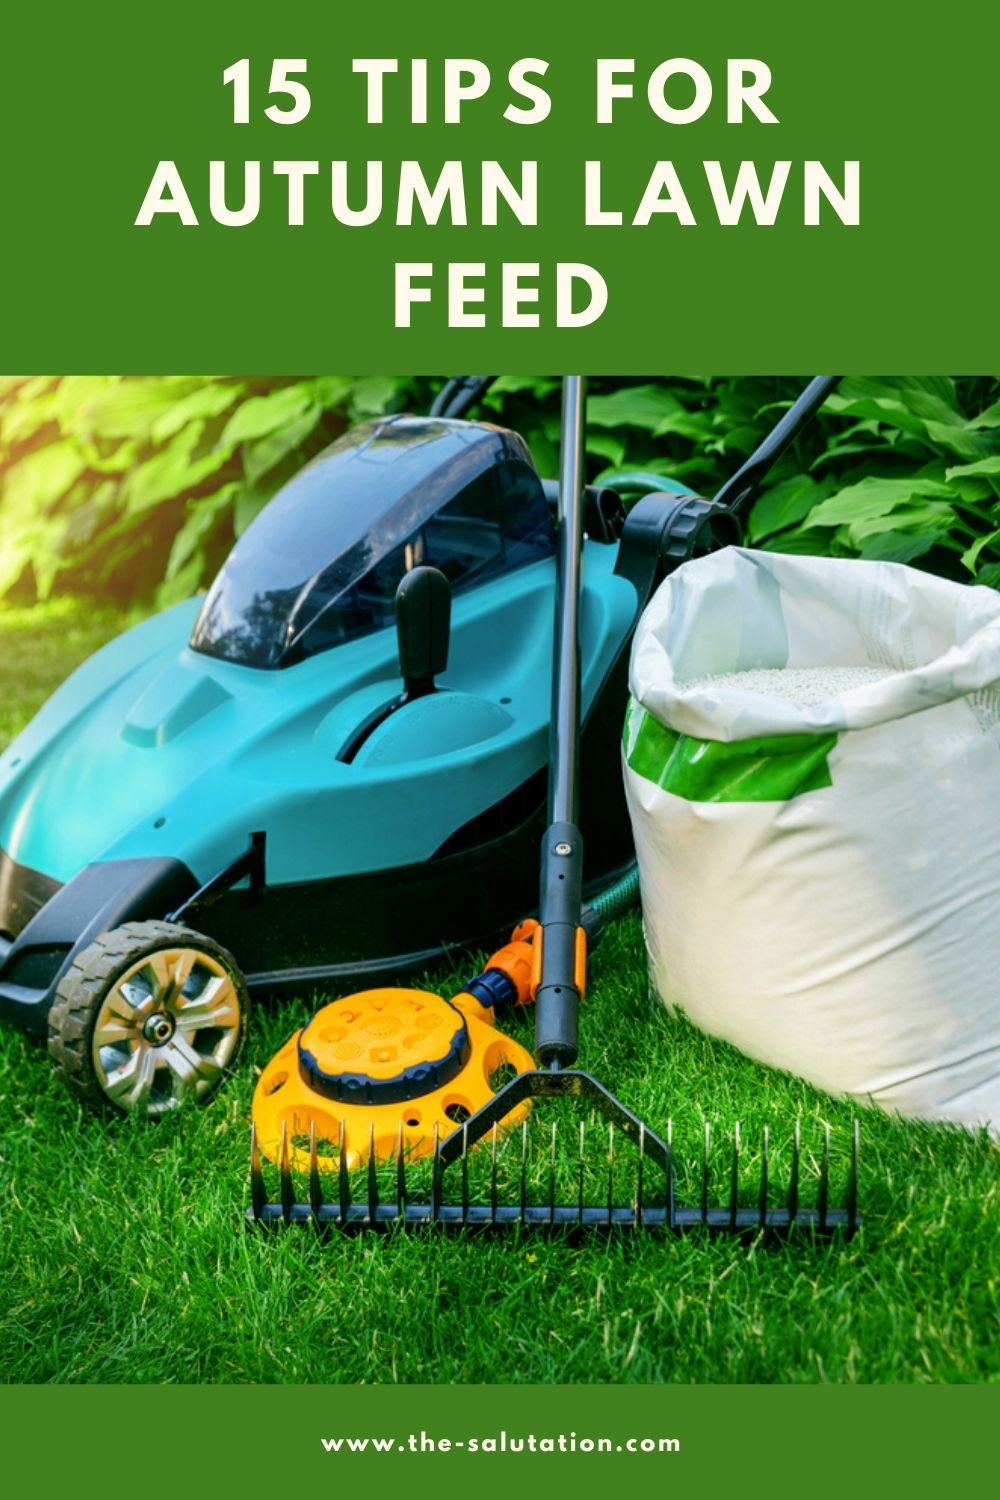 15 Tips for Autumn Lawn Feed 1